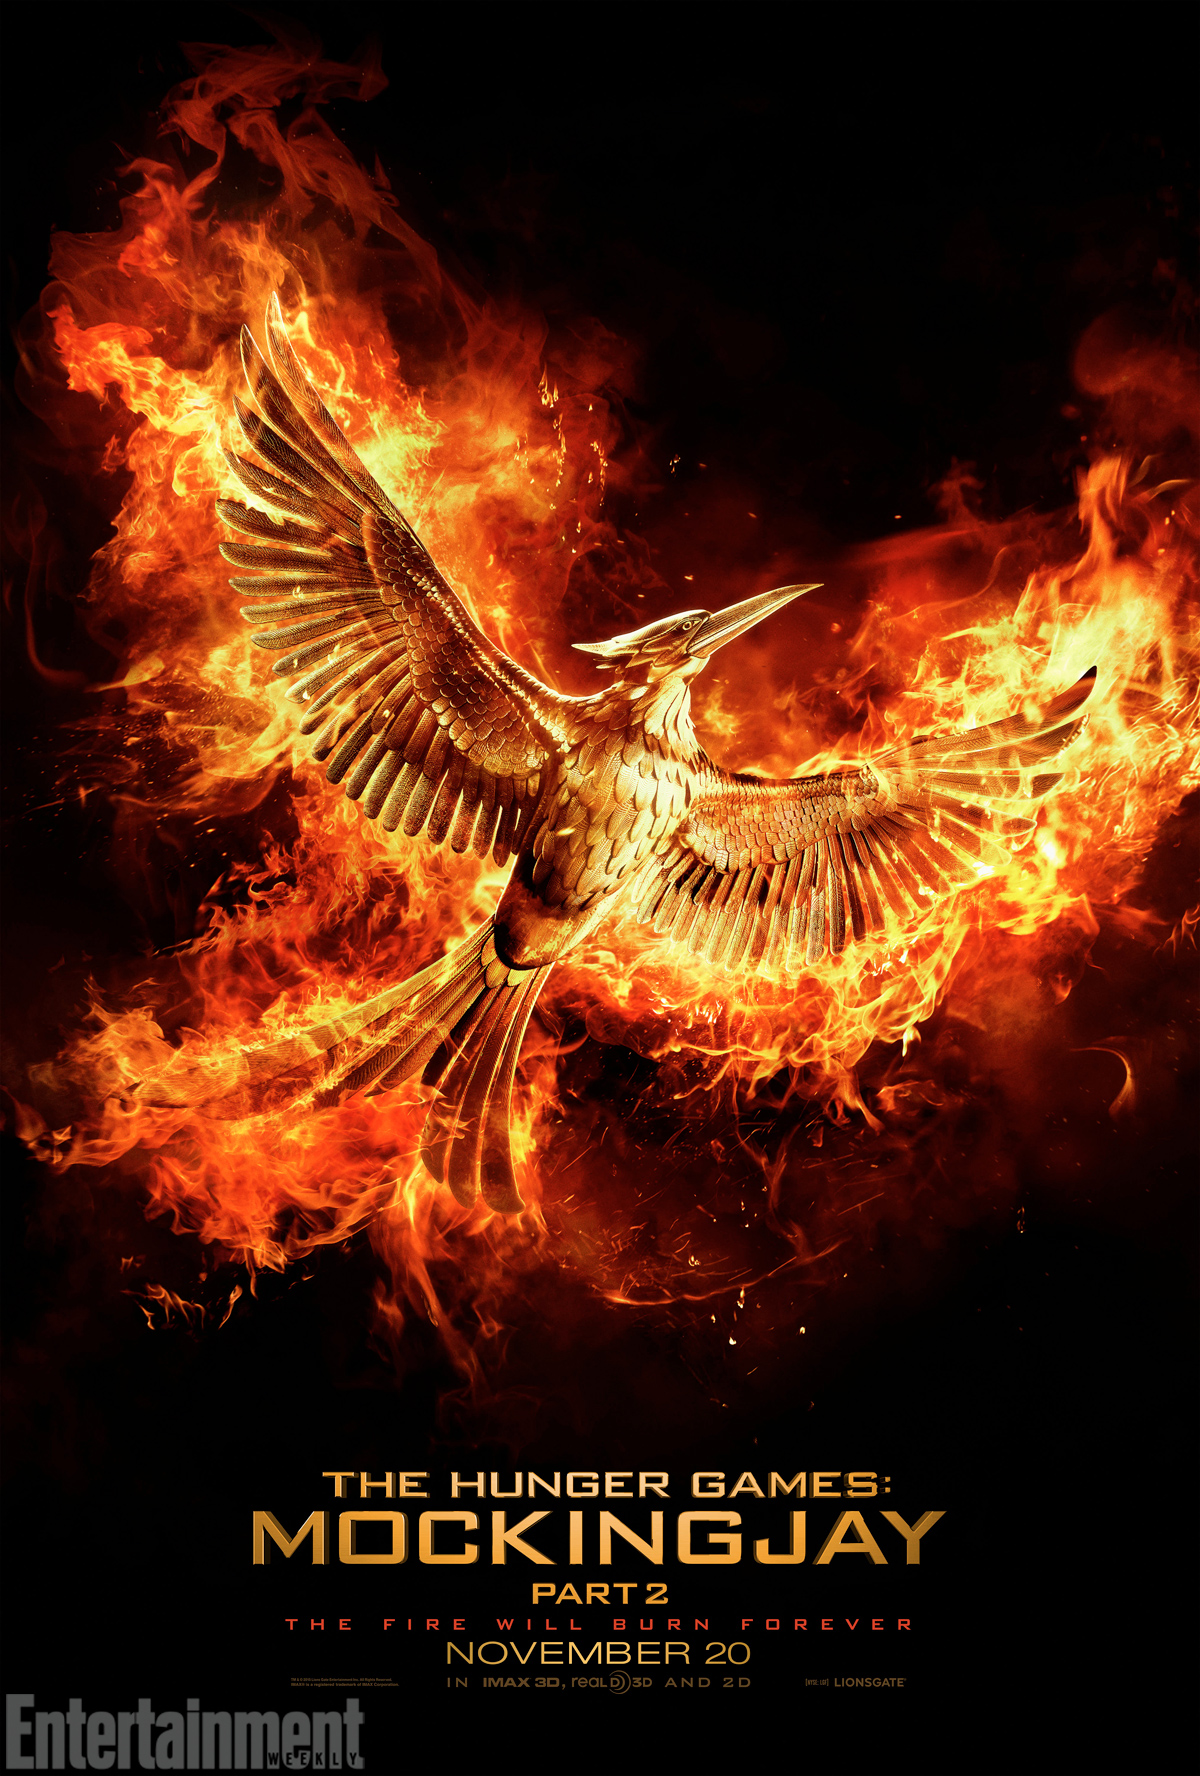 the-hunger-games-mockingjay-part-2-teaser-and-motion-posters